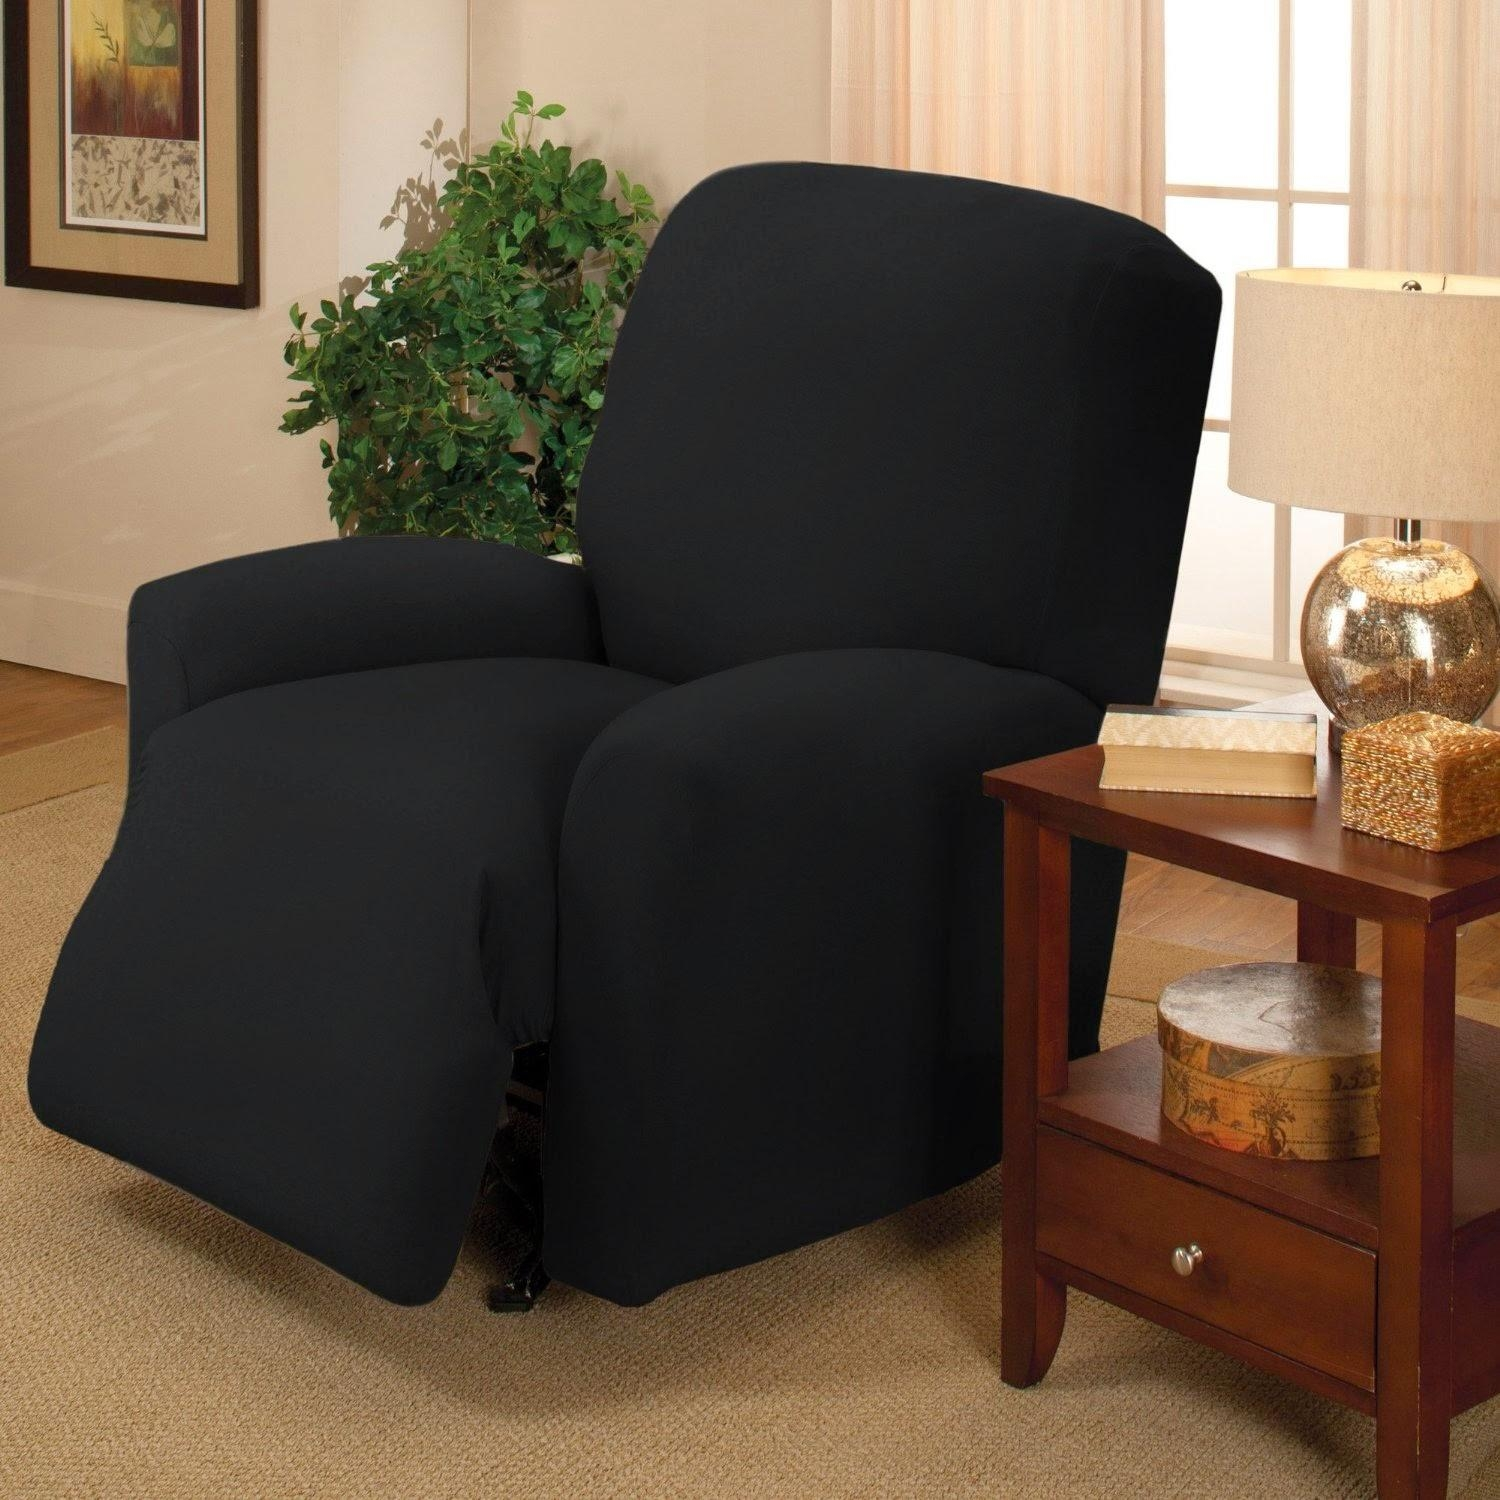 Decorating: Chair Using Leather Walmart Slipcovers For Home Within Black Slipcovers For Sofas (View 20 of 20)